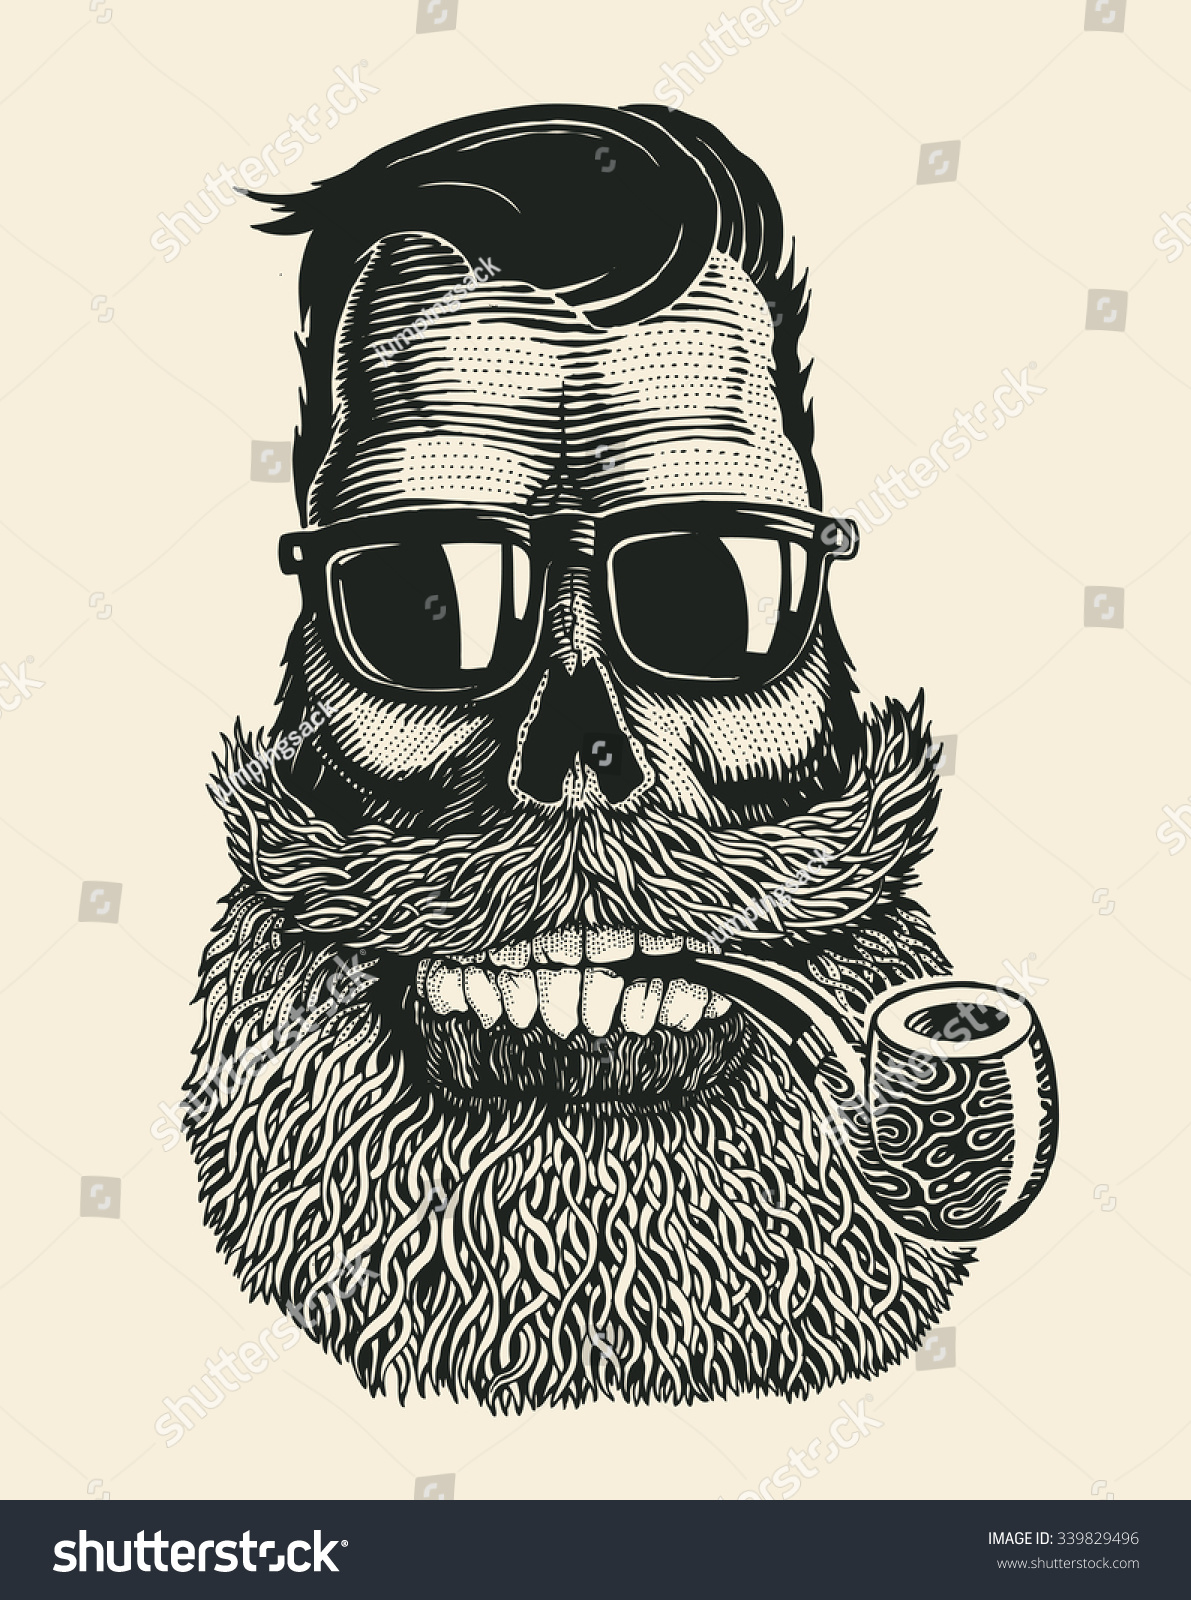 skull hipster mustache beard tobacco pipes stock vector 339829496